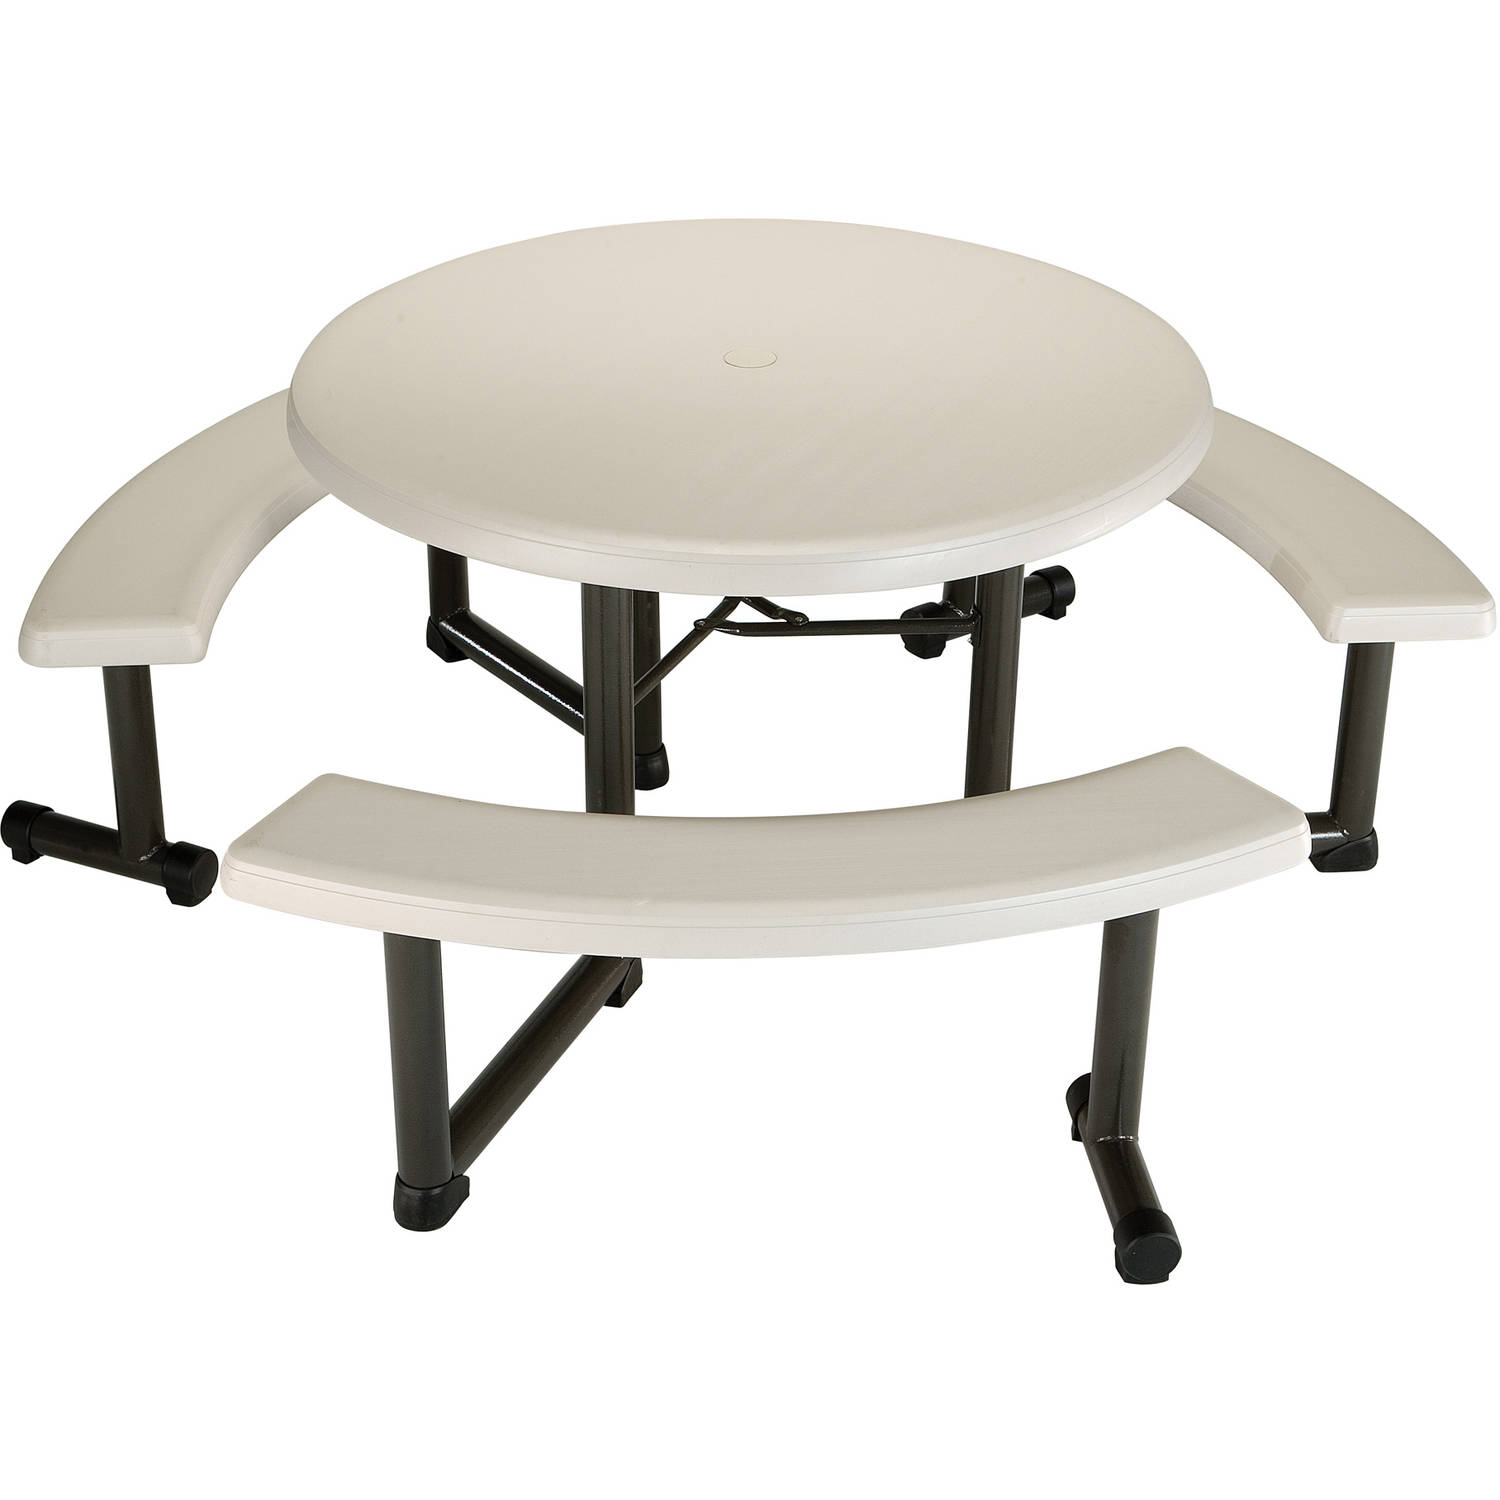 "Lifetime 44"" Round Picnic Table, Almond"